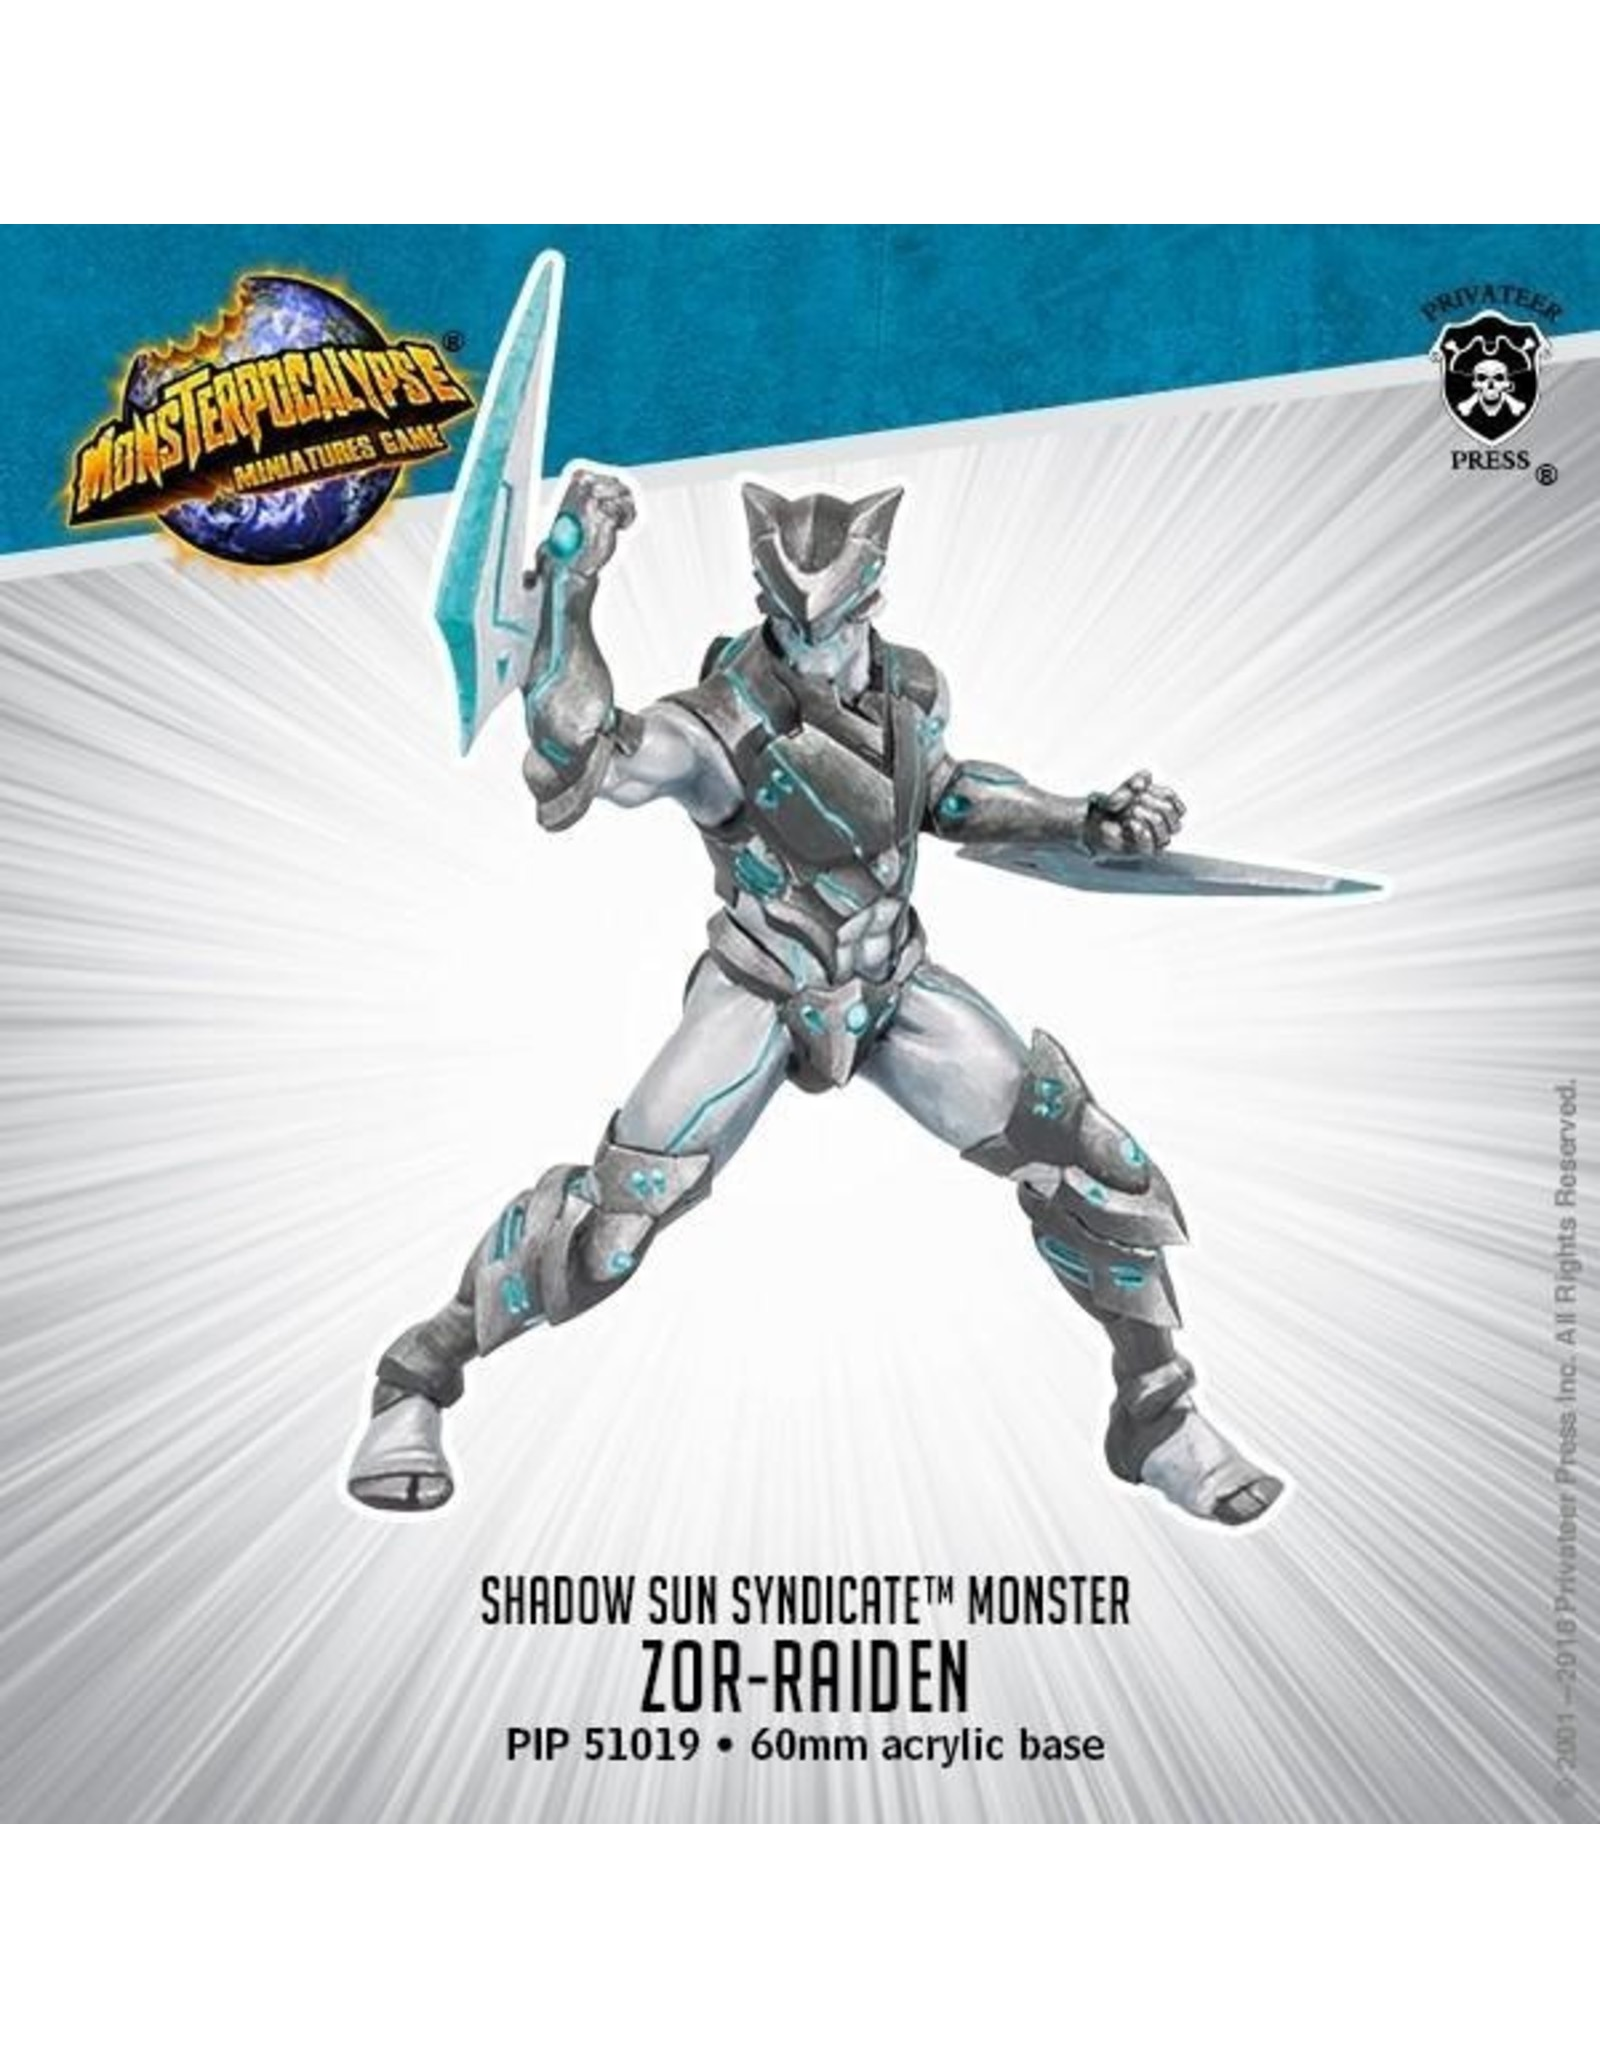 Monsterpocalypse: Shadow Sun Syndicate Zor-Raiden Monster (Resin and White Metal)